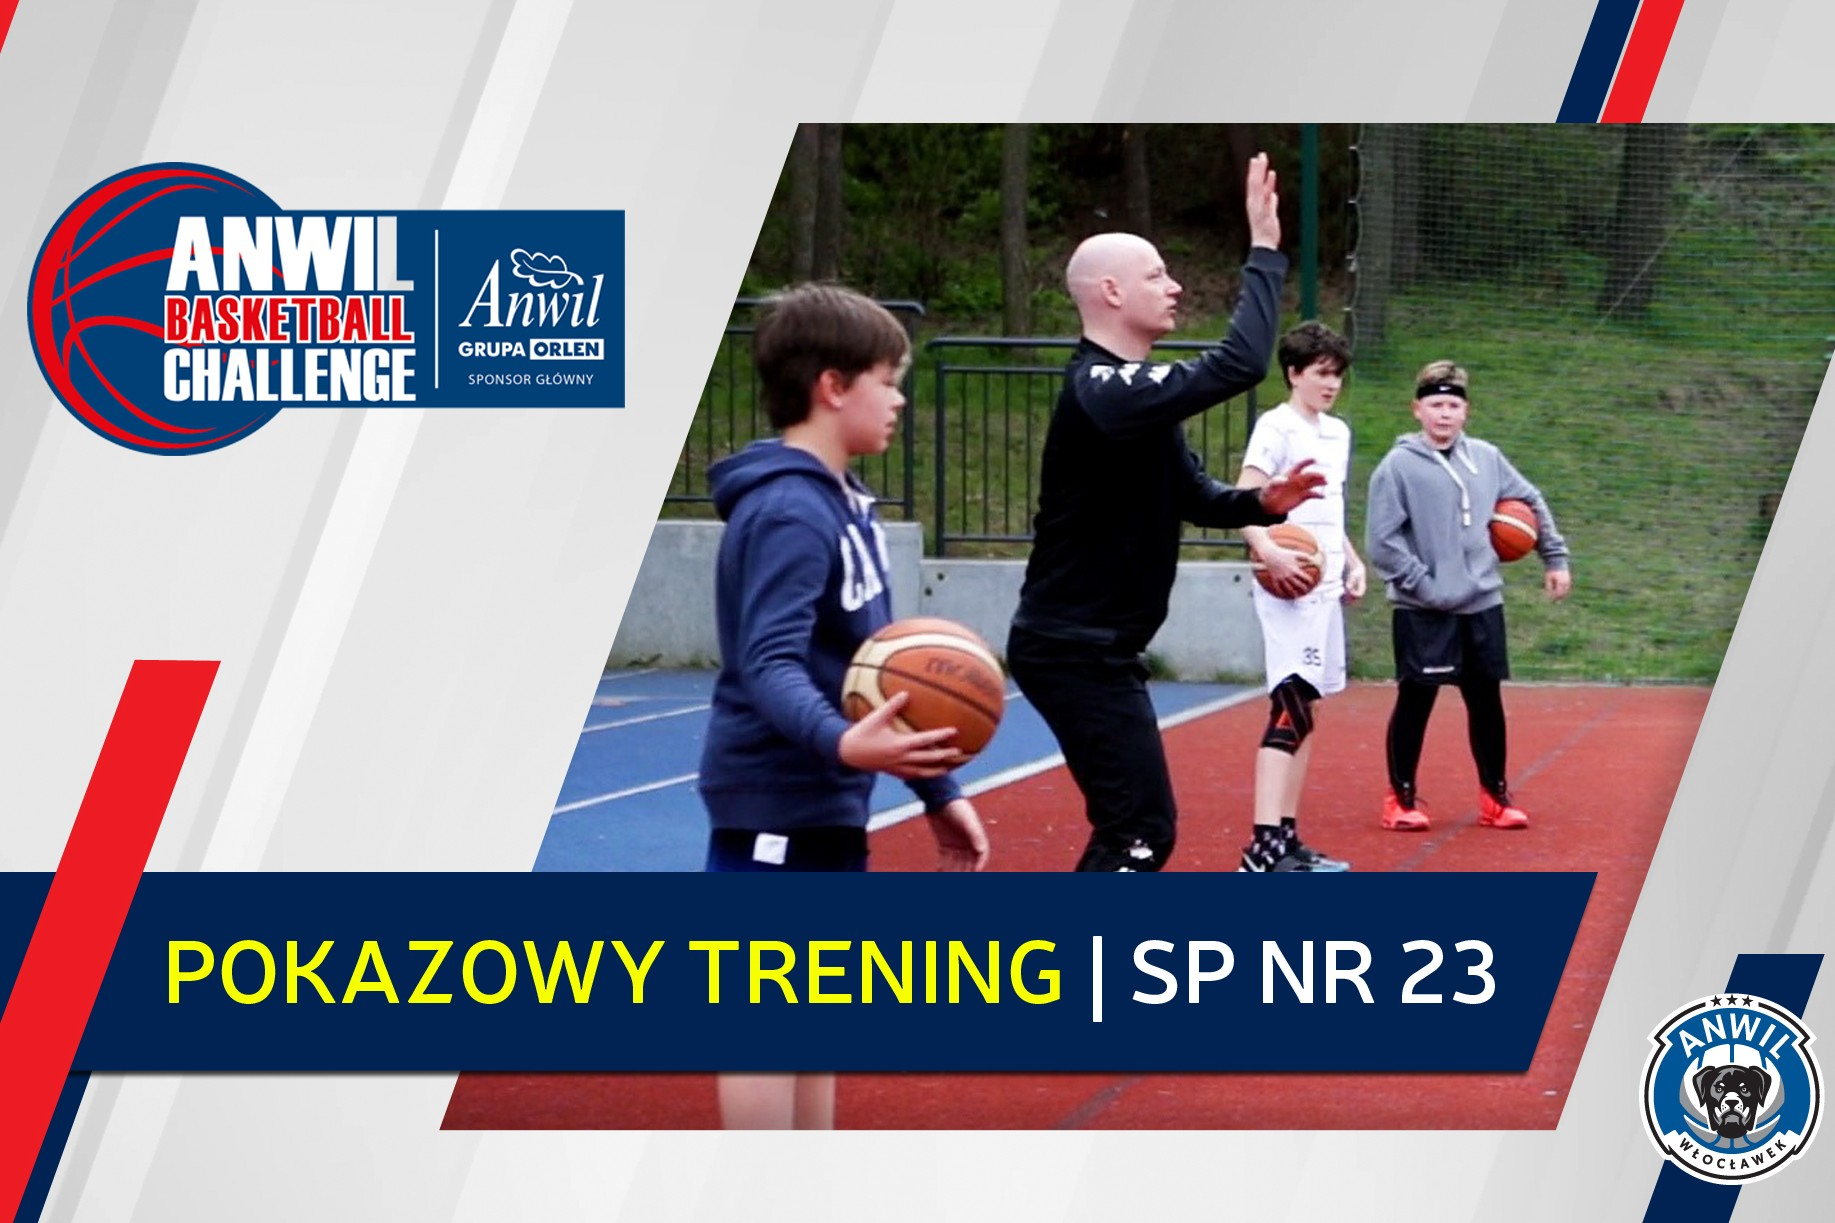 Wideo | Anwil Basketball Challenge | Trening w SP nr 23